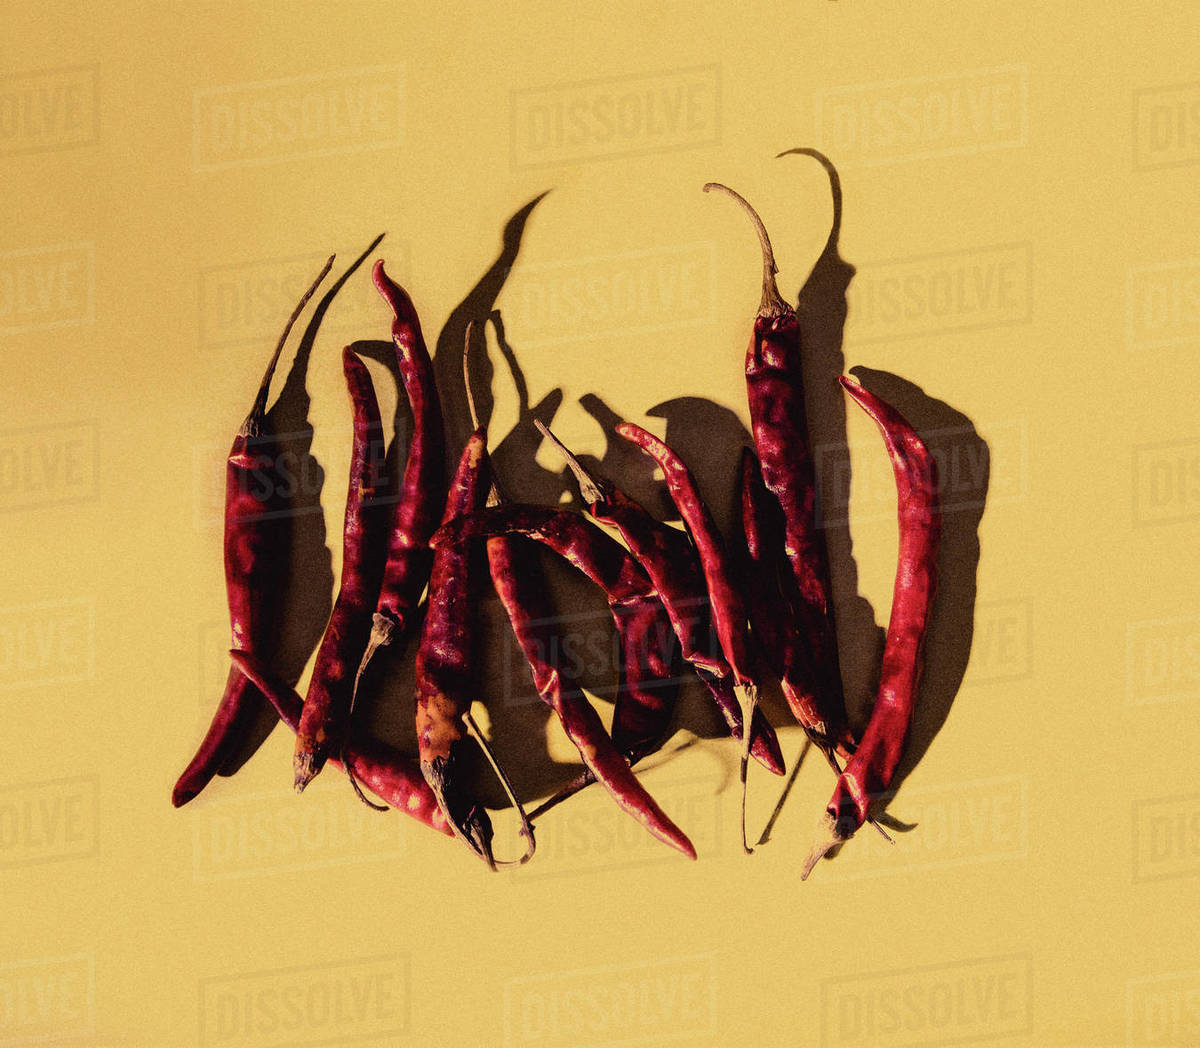 Dried Peppers on a Yellow Background Royalty-free stock photo